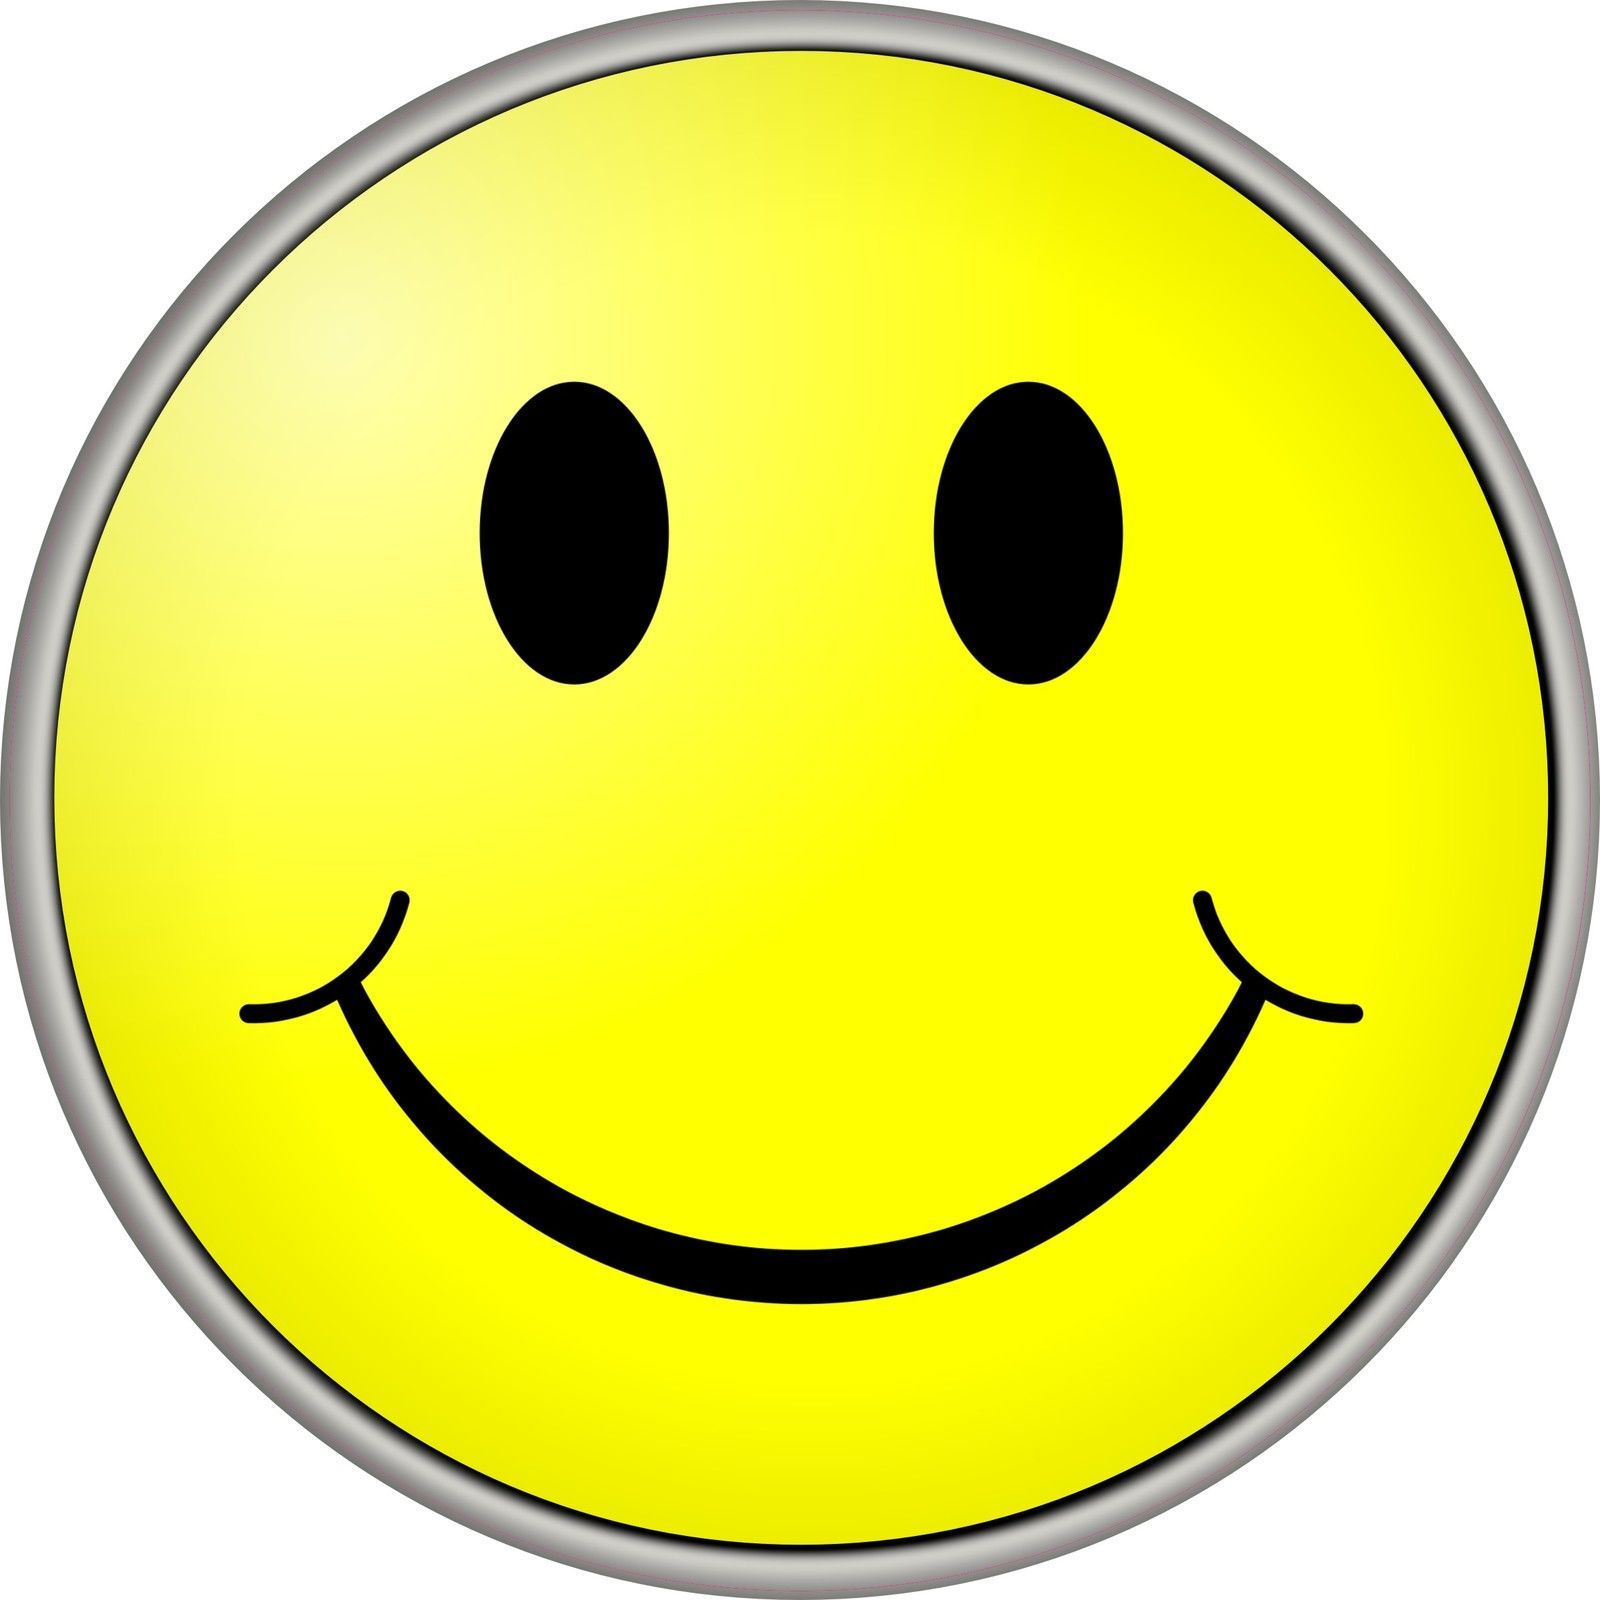 Smiley Face Yellow 4x4 Spare Wheel Cover Decal Sticker